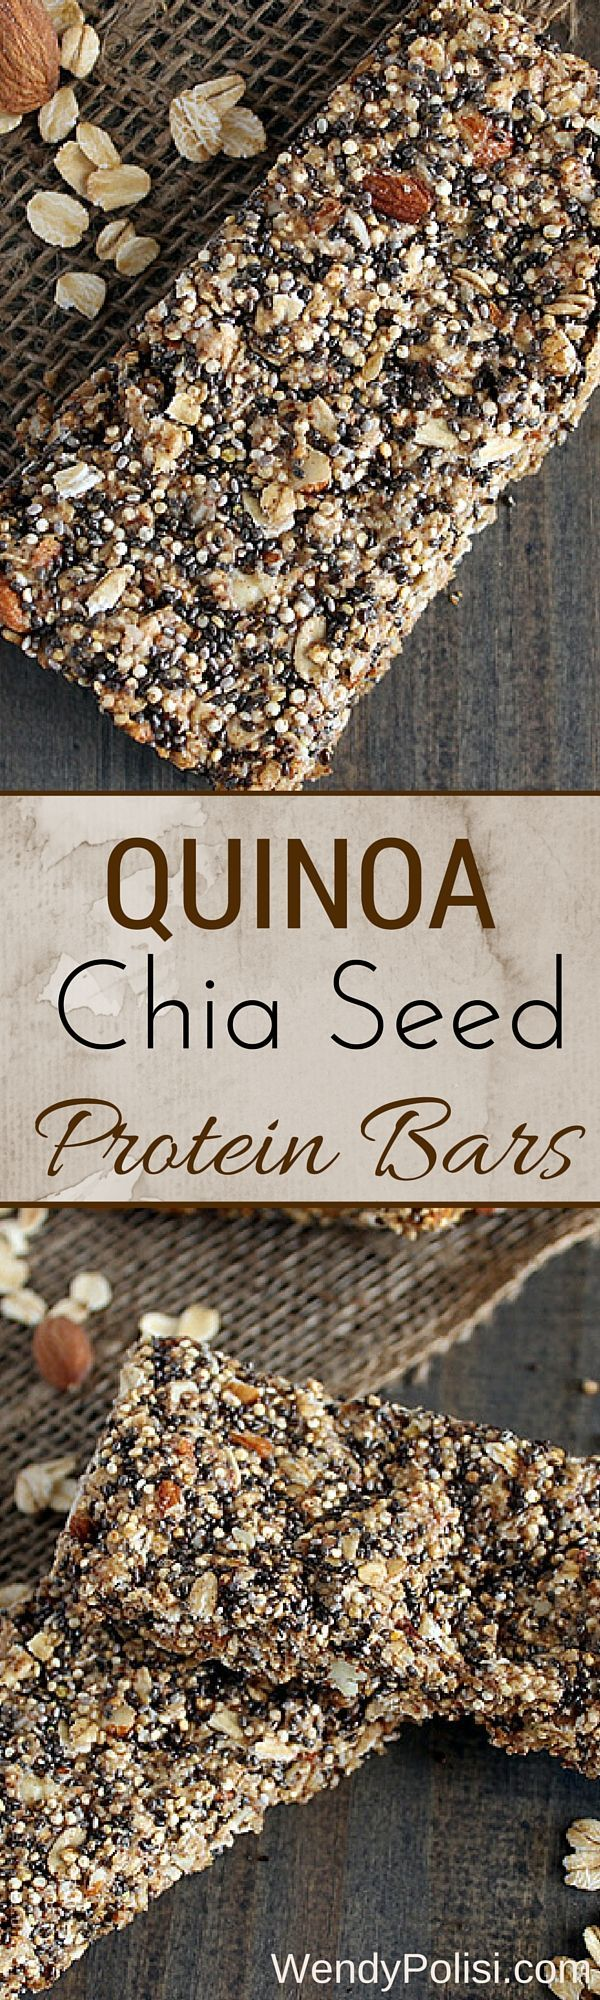 Quinoa Chia Seed Protein Bars - These Quinoa Chia Seed Protein Bars make the perfect healthy snack. This gluten free protein bar recipe will leave the whole family smiling. via @wendypolisi